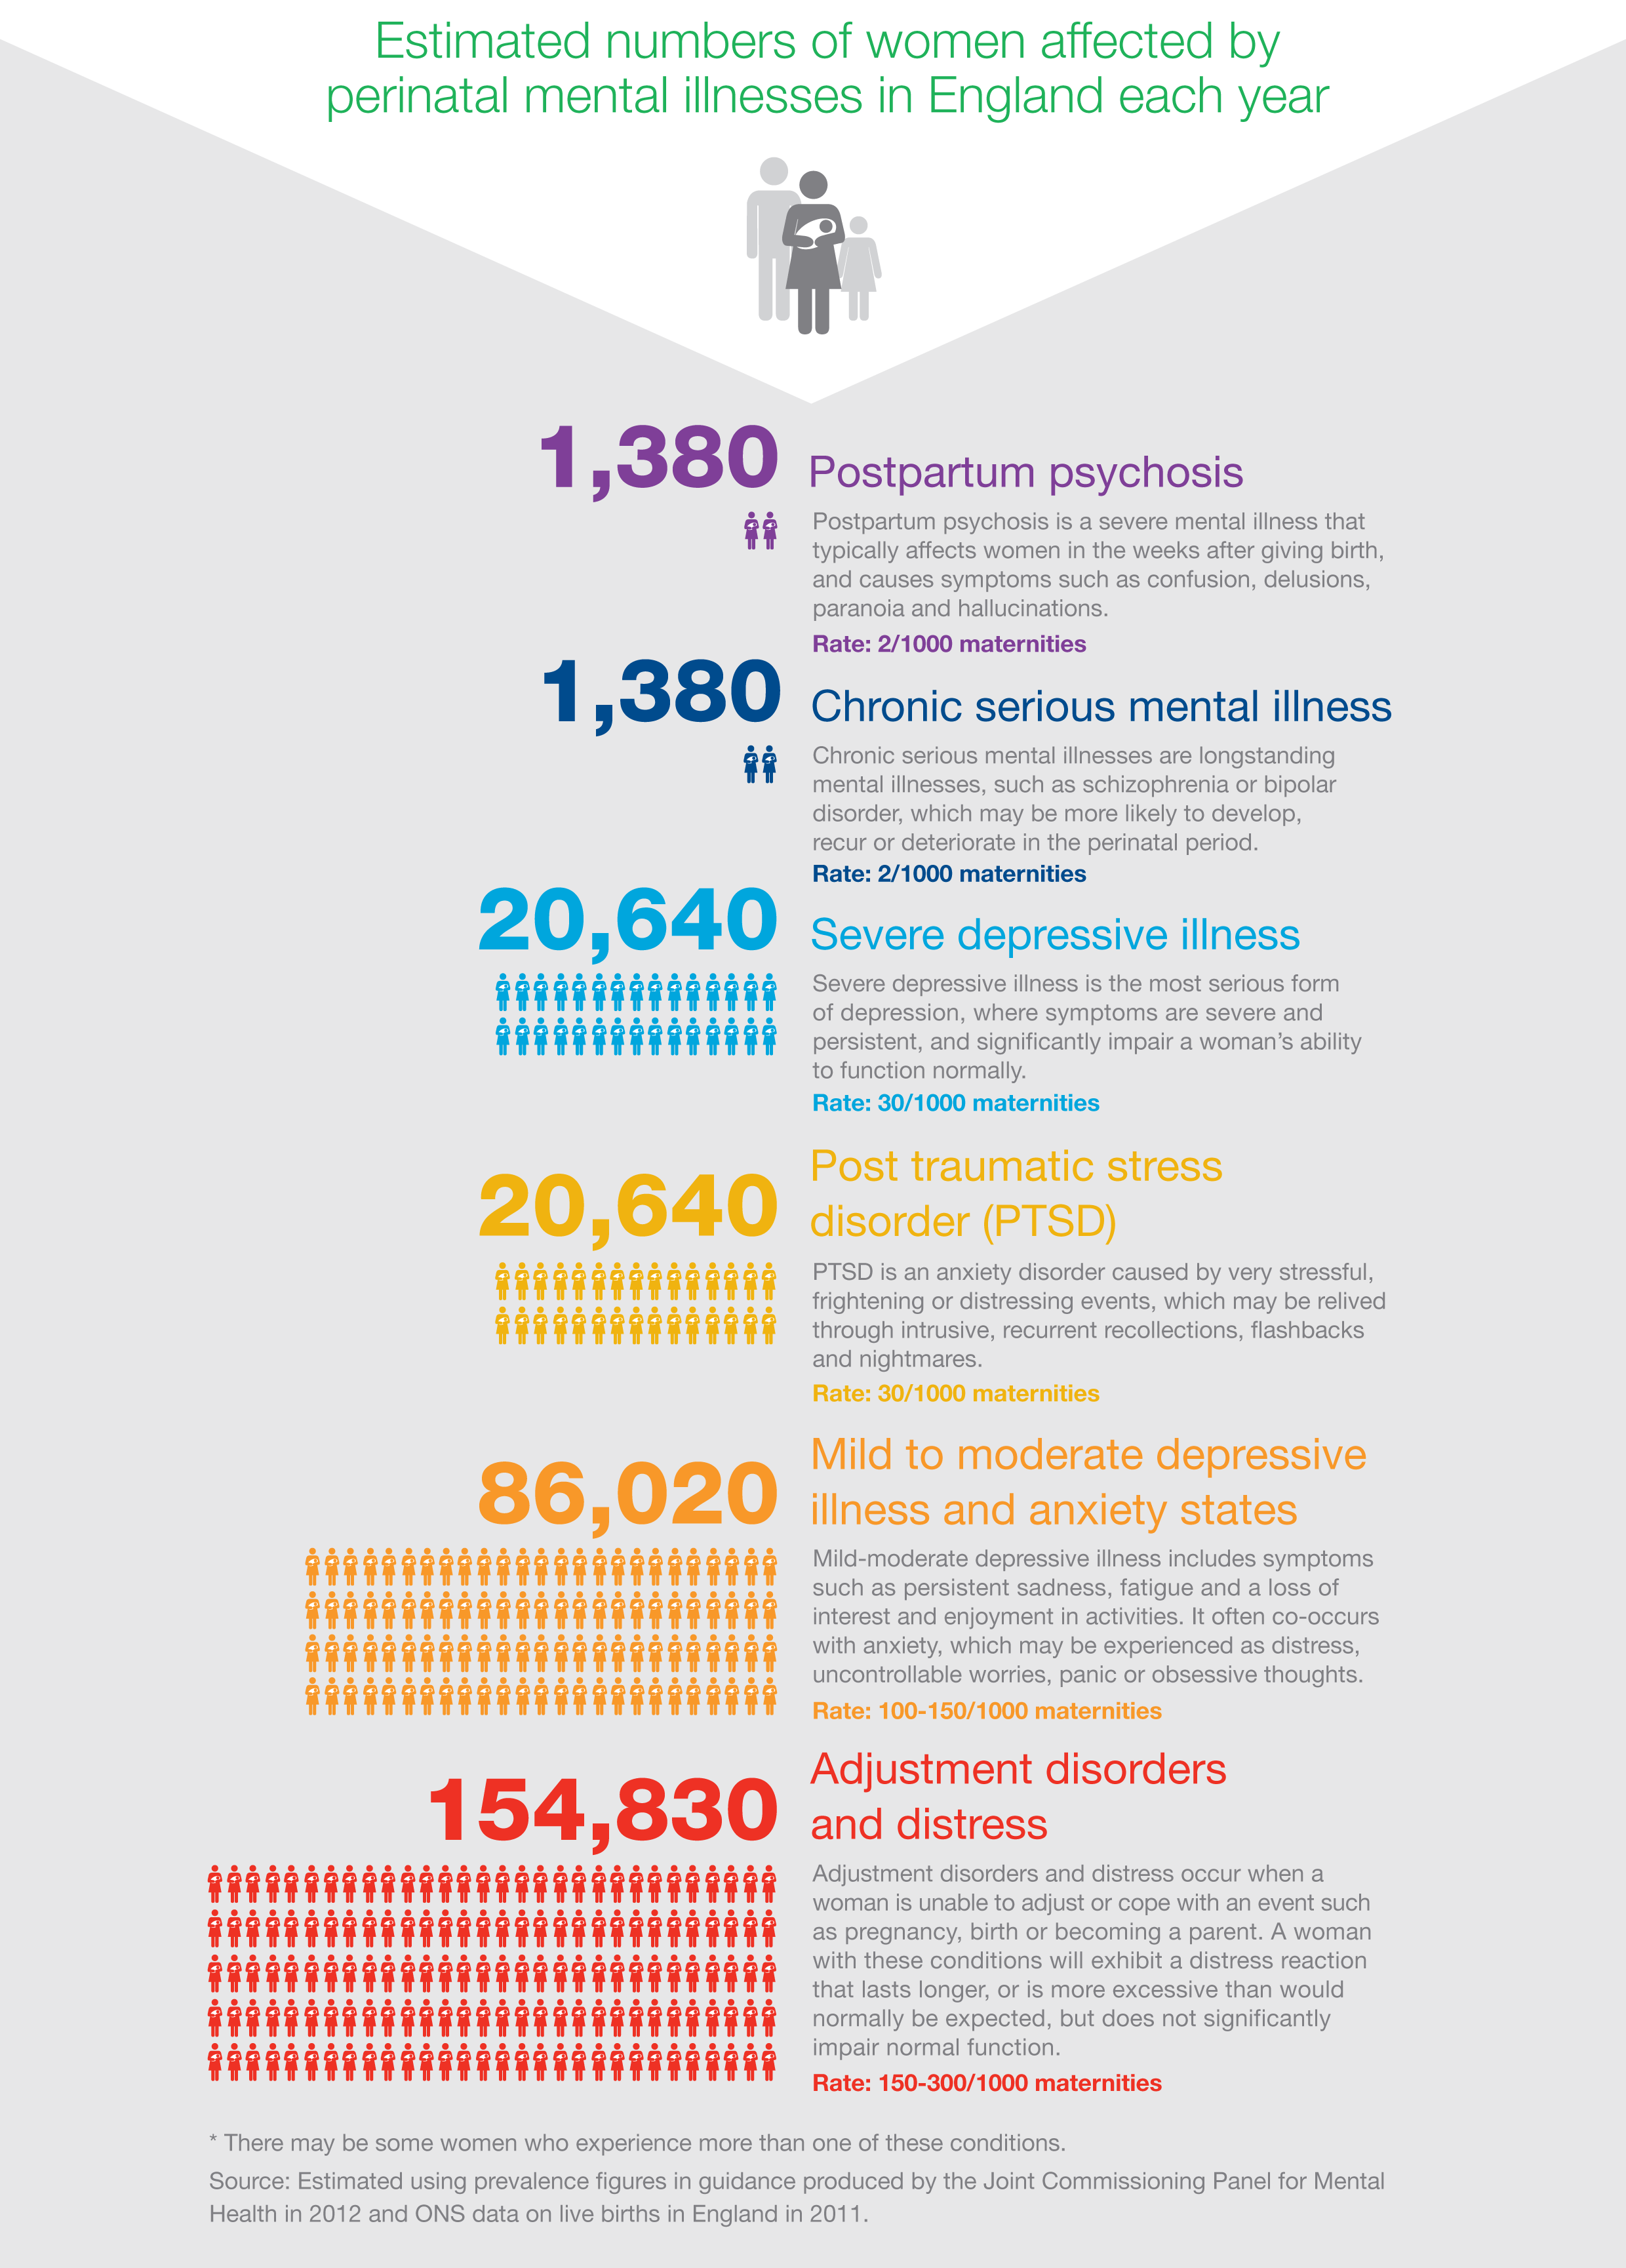 NSPCC_Infographic.png